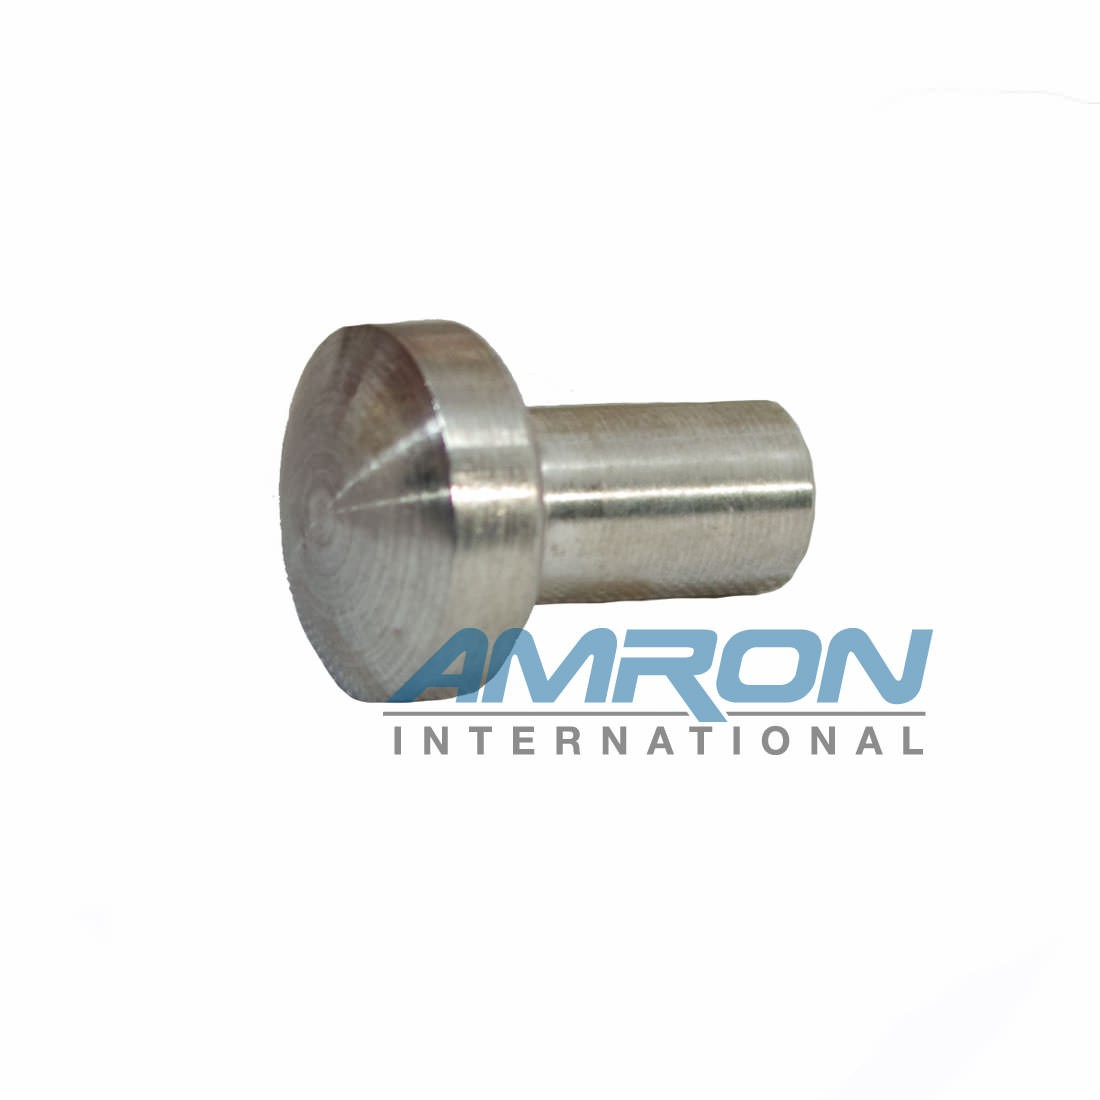 Kirby Morgan 550-059 Spacer